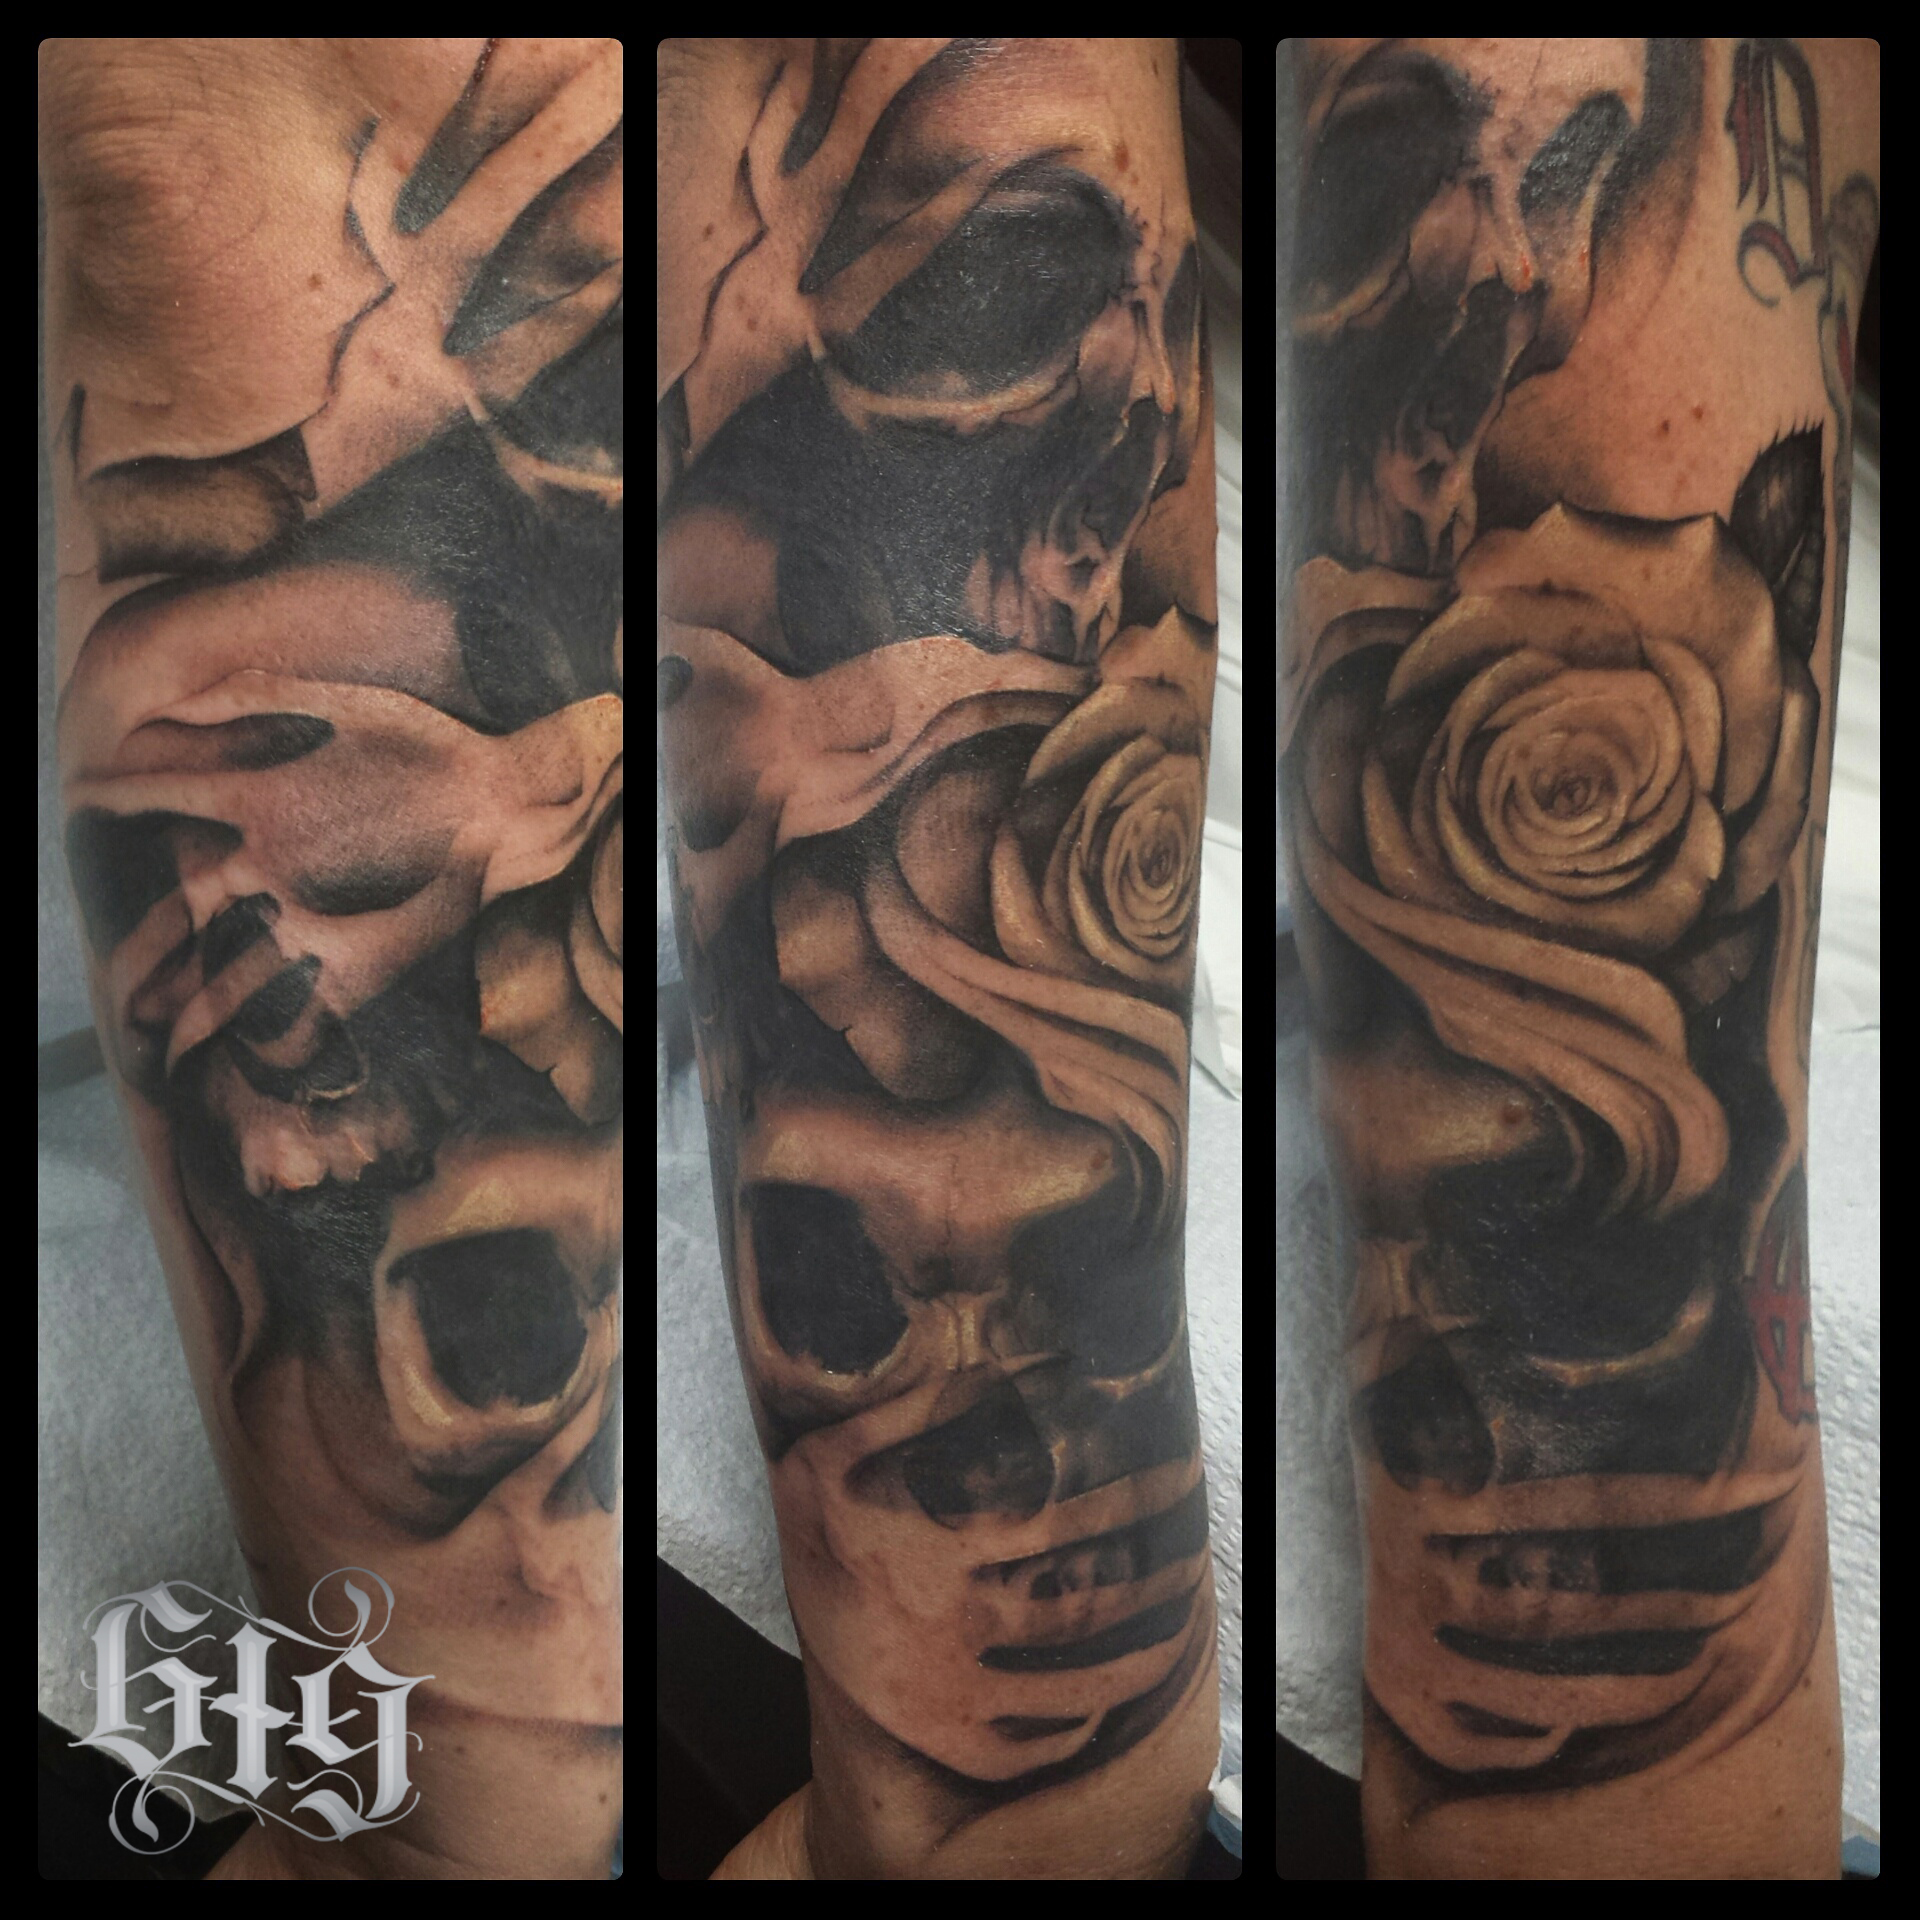 Realistic Skulls 'hear no evil, see no evil, speak no evil' with roses, black and gray fine details. Half arm sleeve tattoo